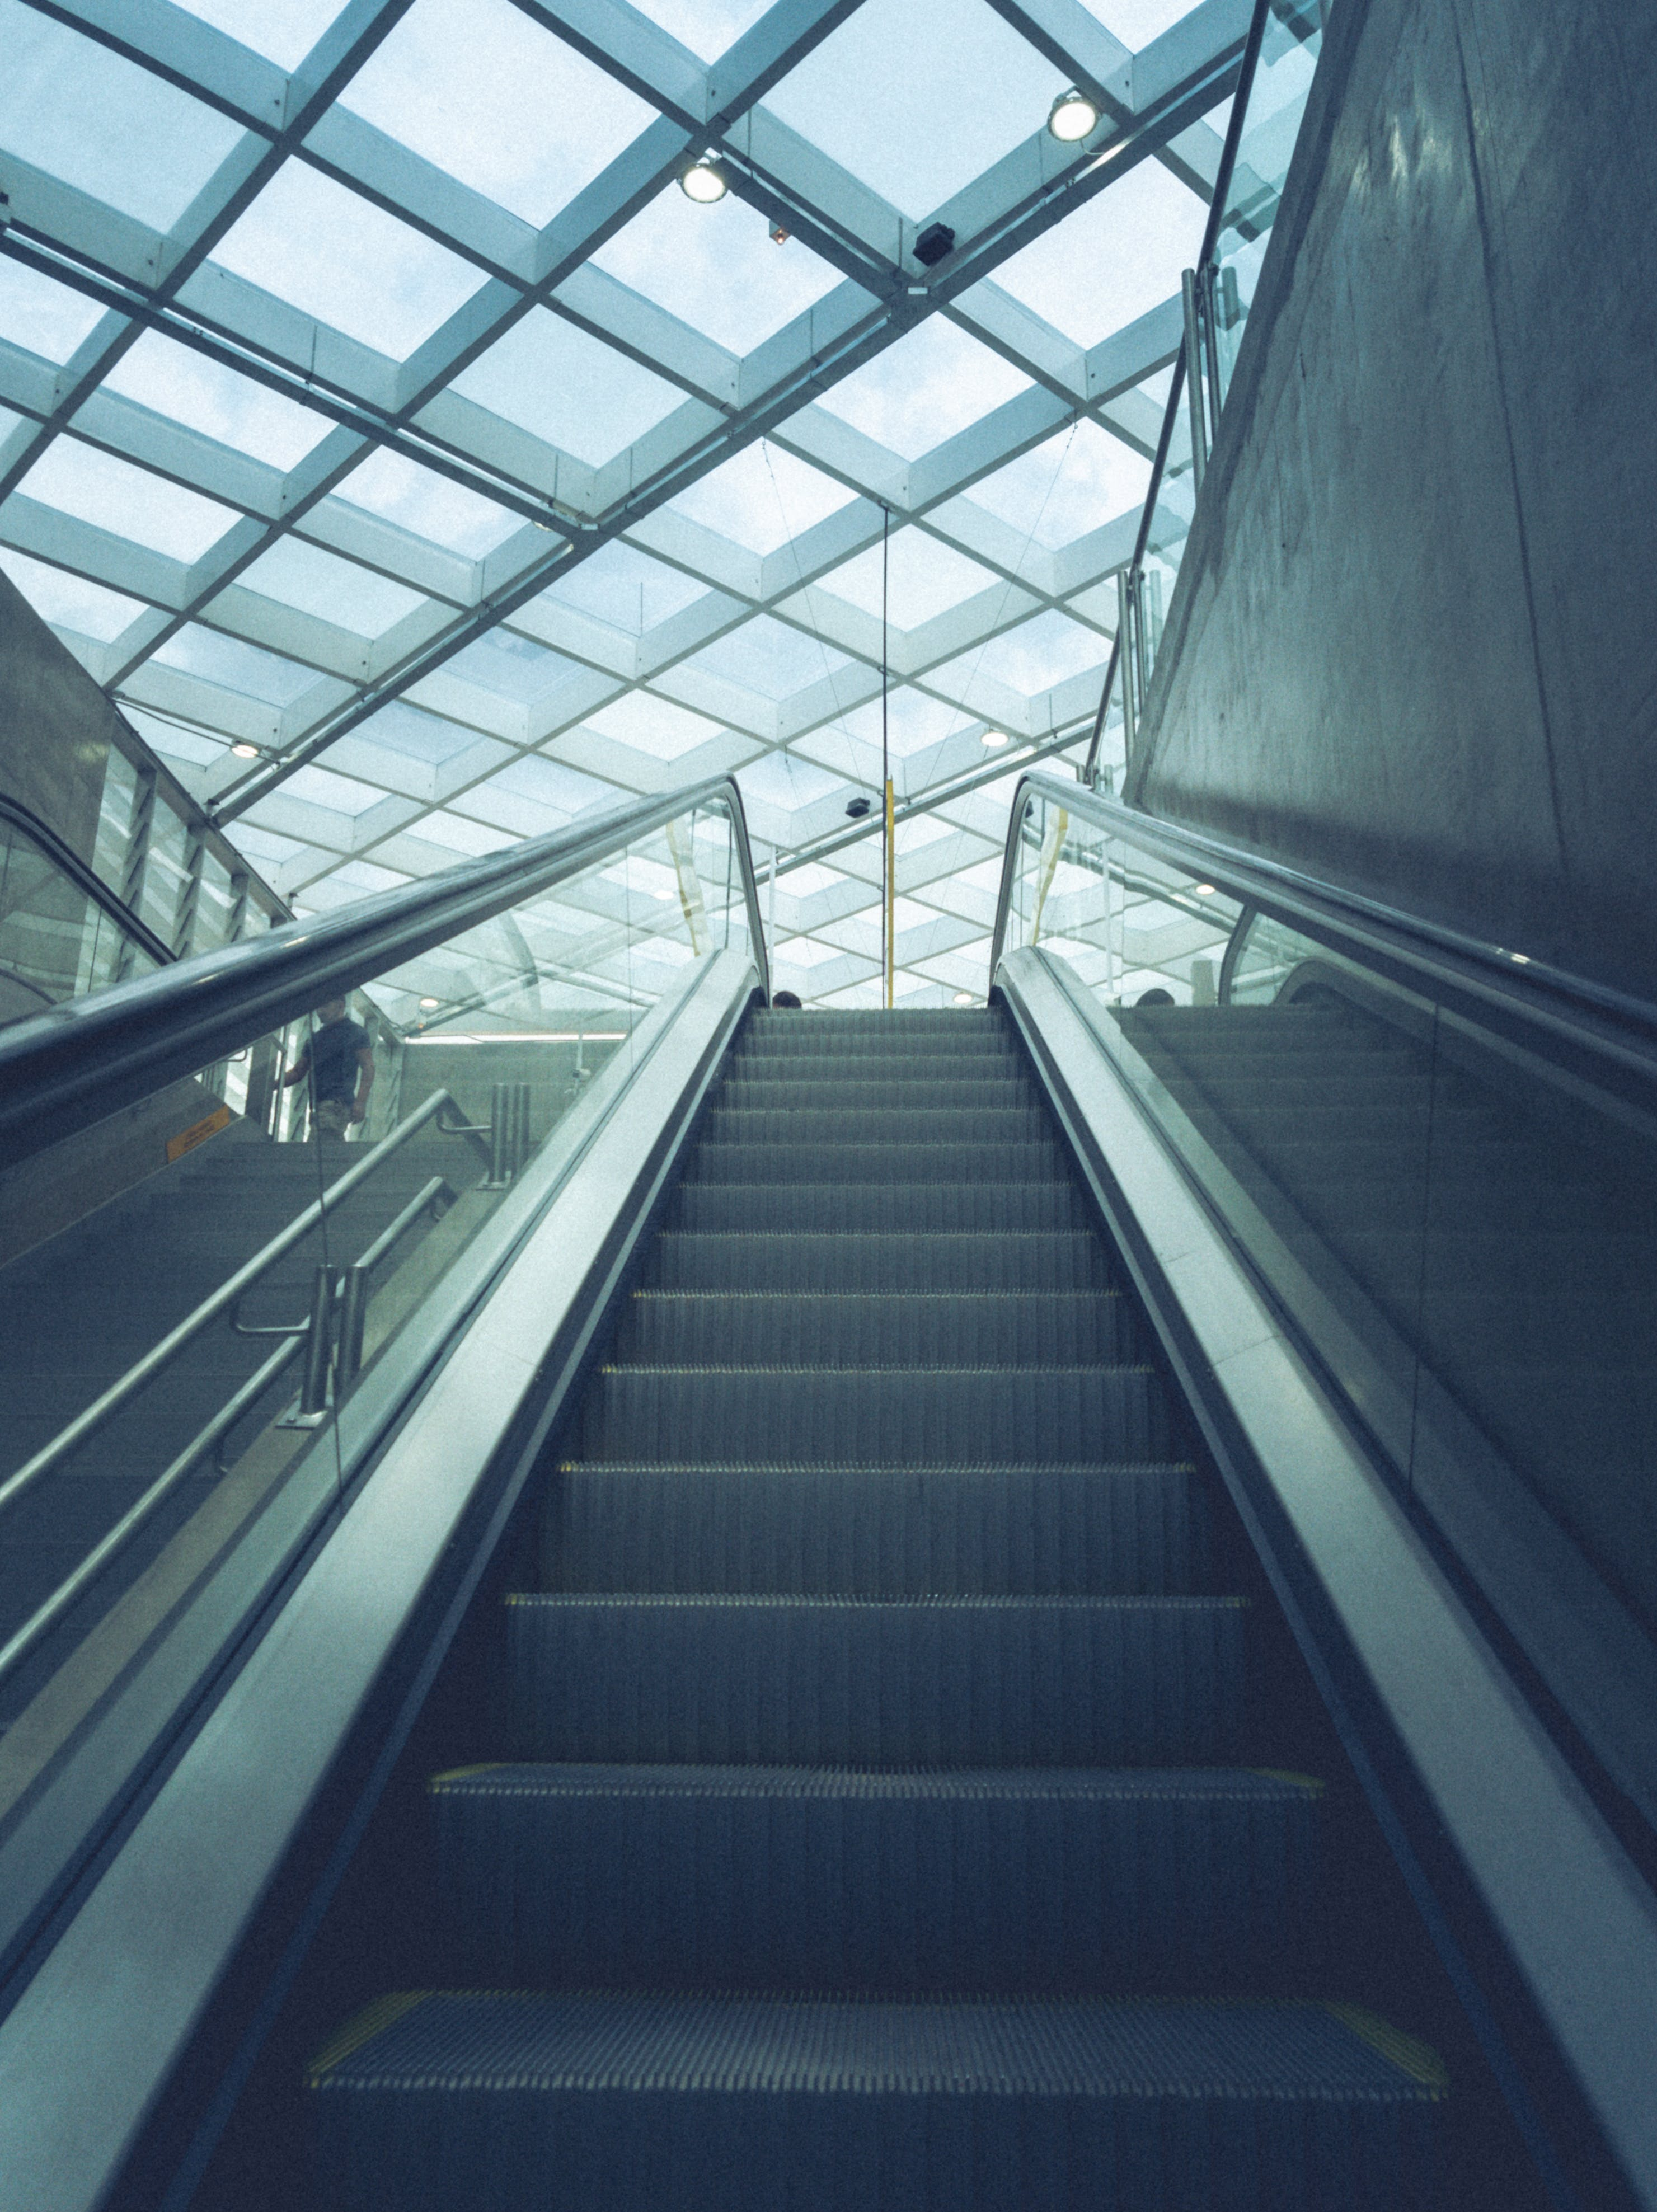 Low Angle Photography Of Escalator